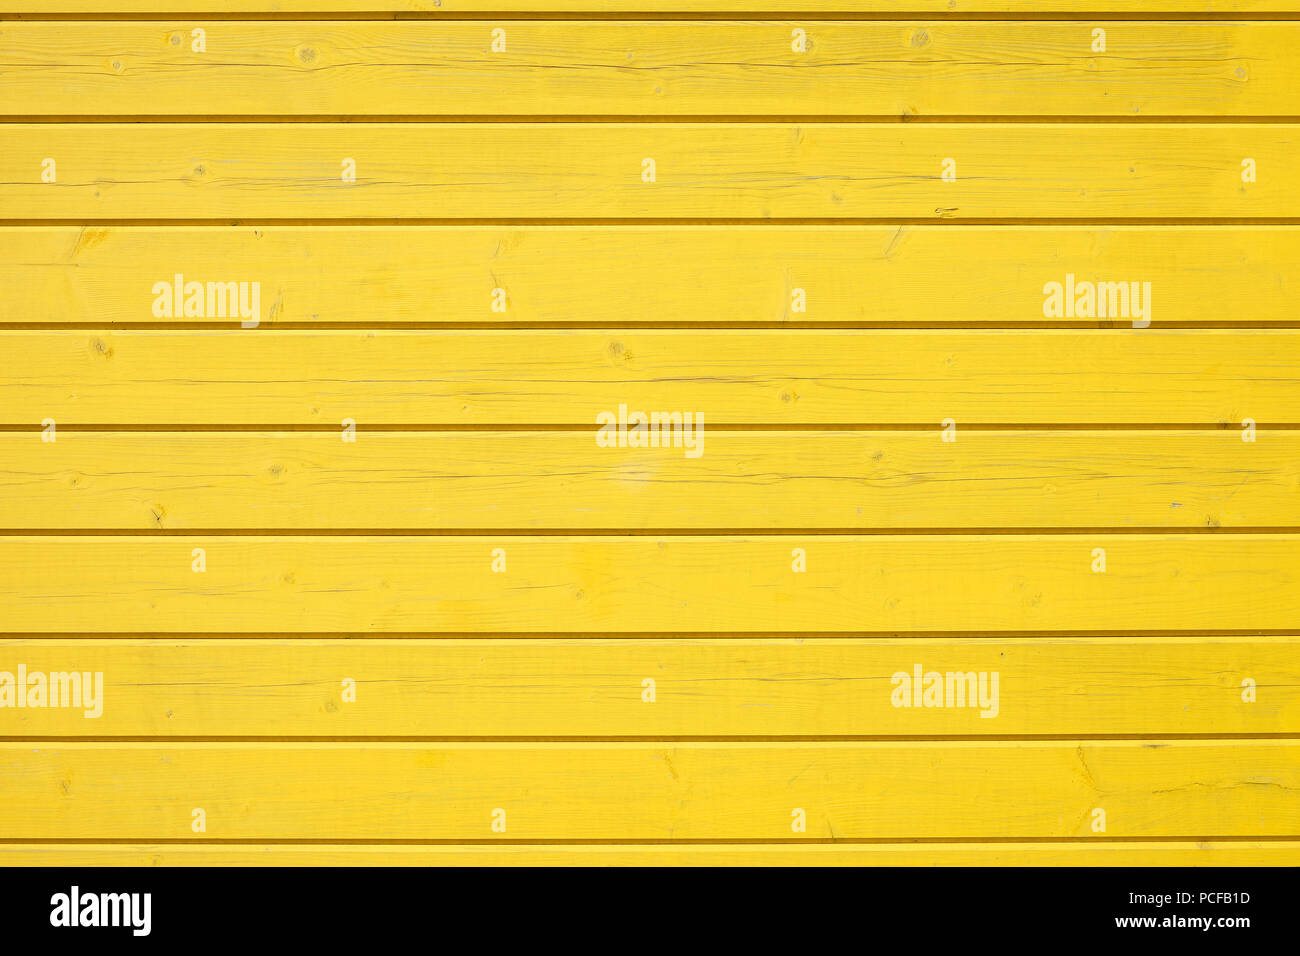 Wooden wall of horizontally arranged yellow painted boards, background image - Stock Image